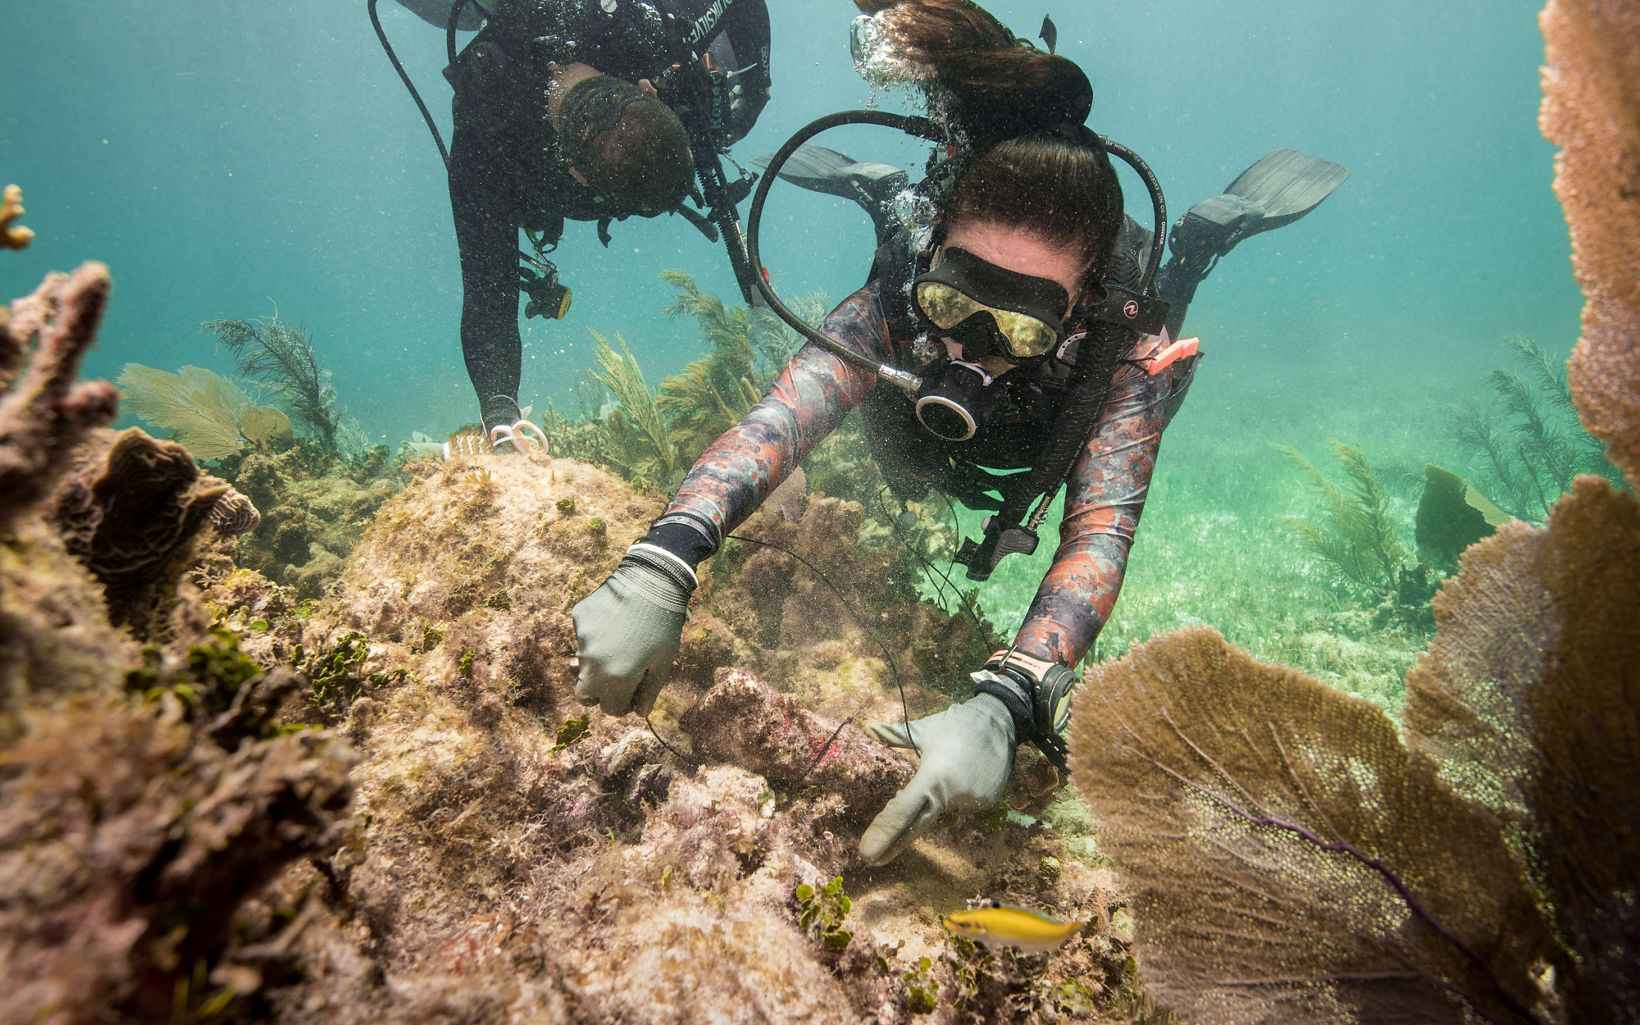 A diver practices reattaching coral pieces to a reef.